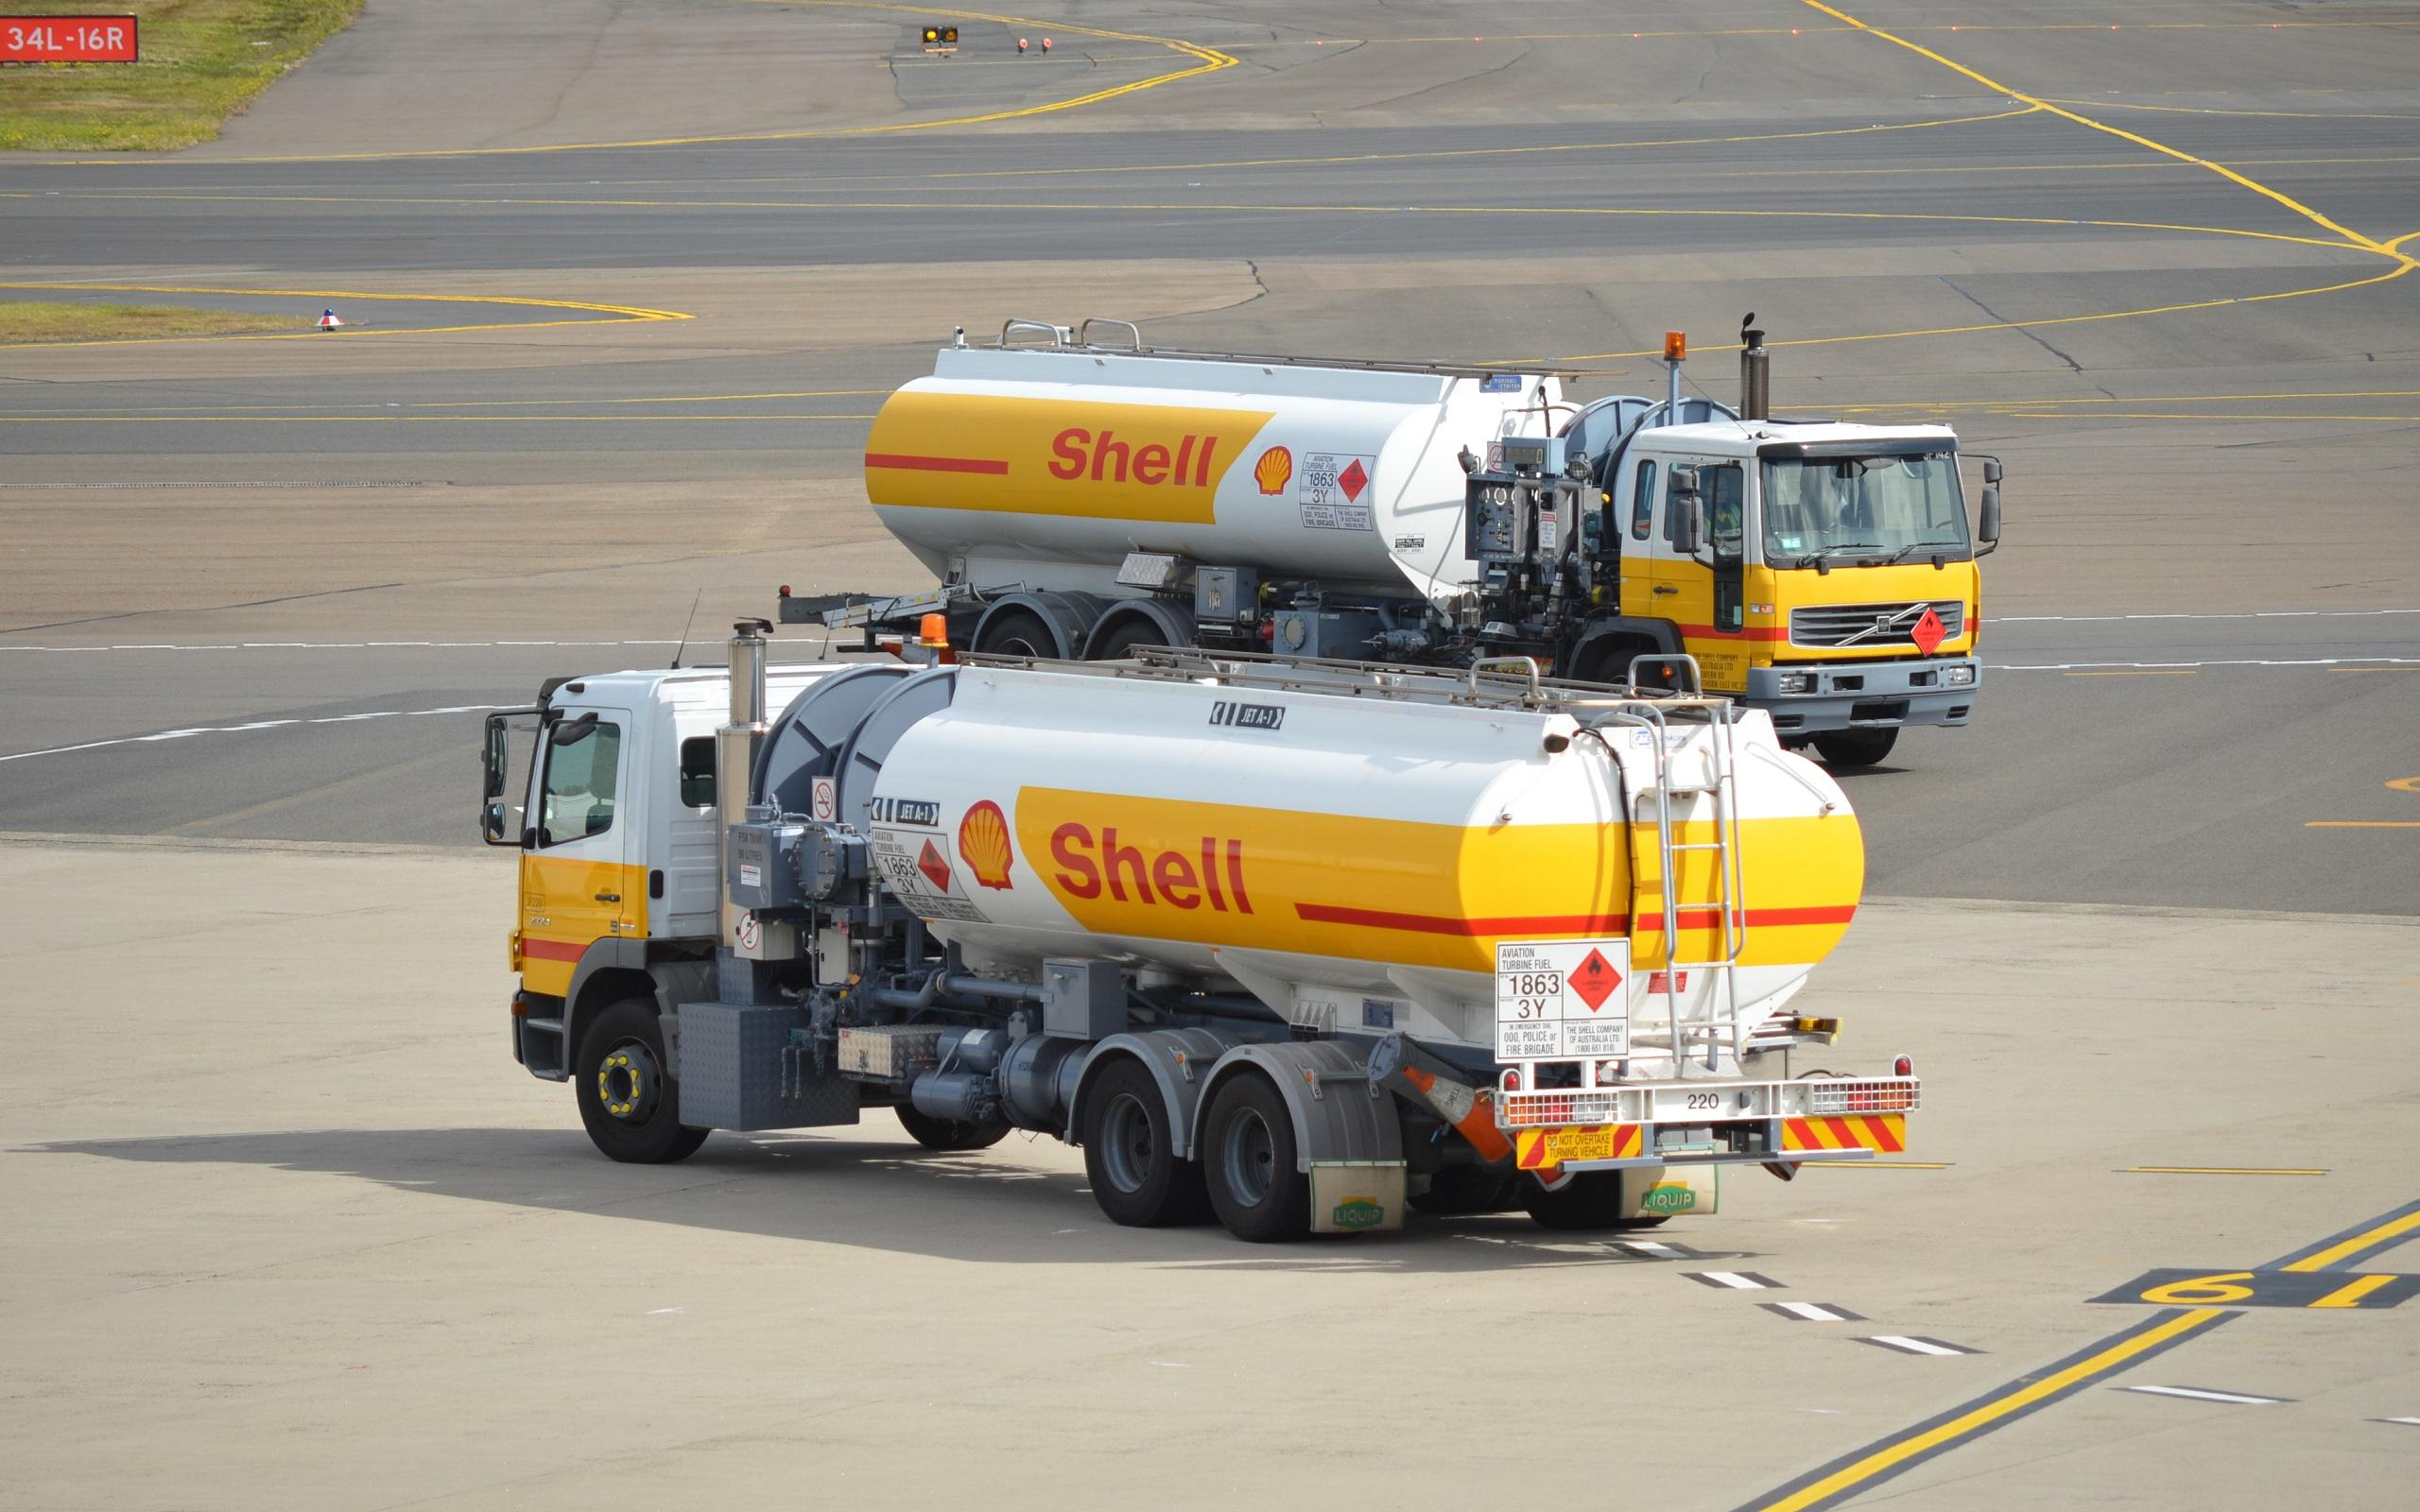 Shell Vip Jet Tanker wallpapers HD quality